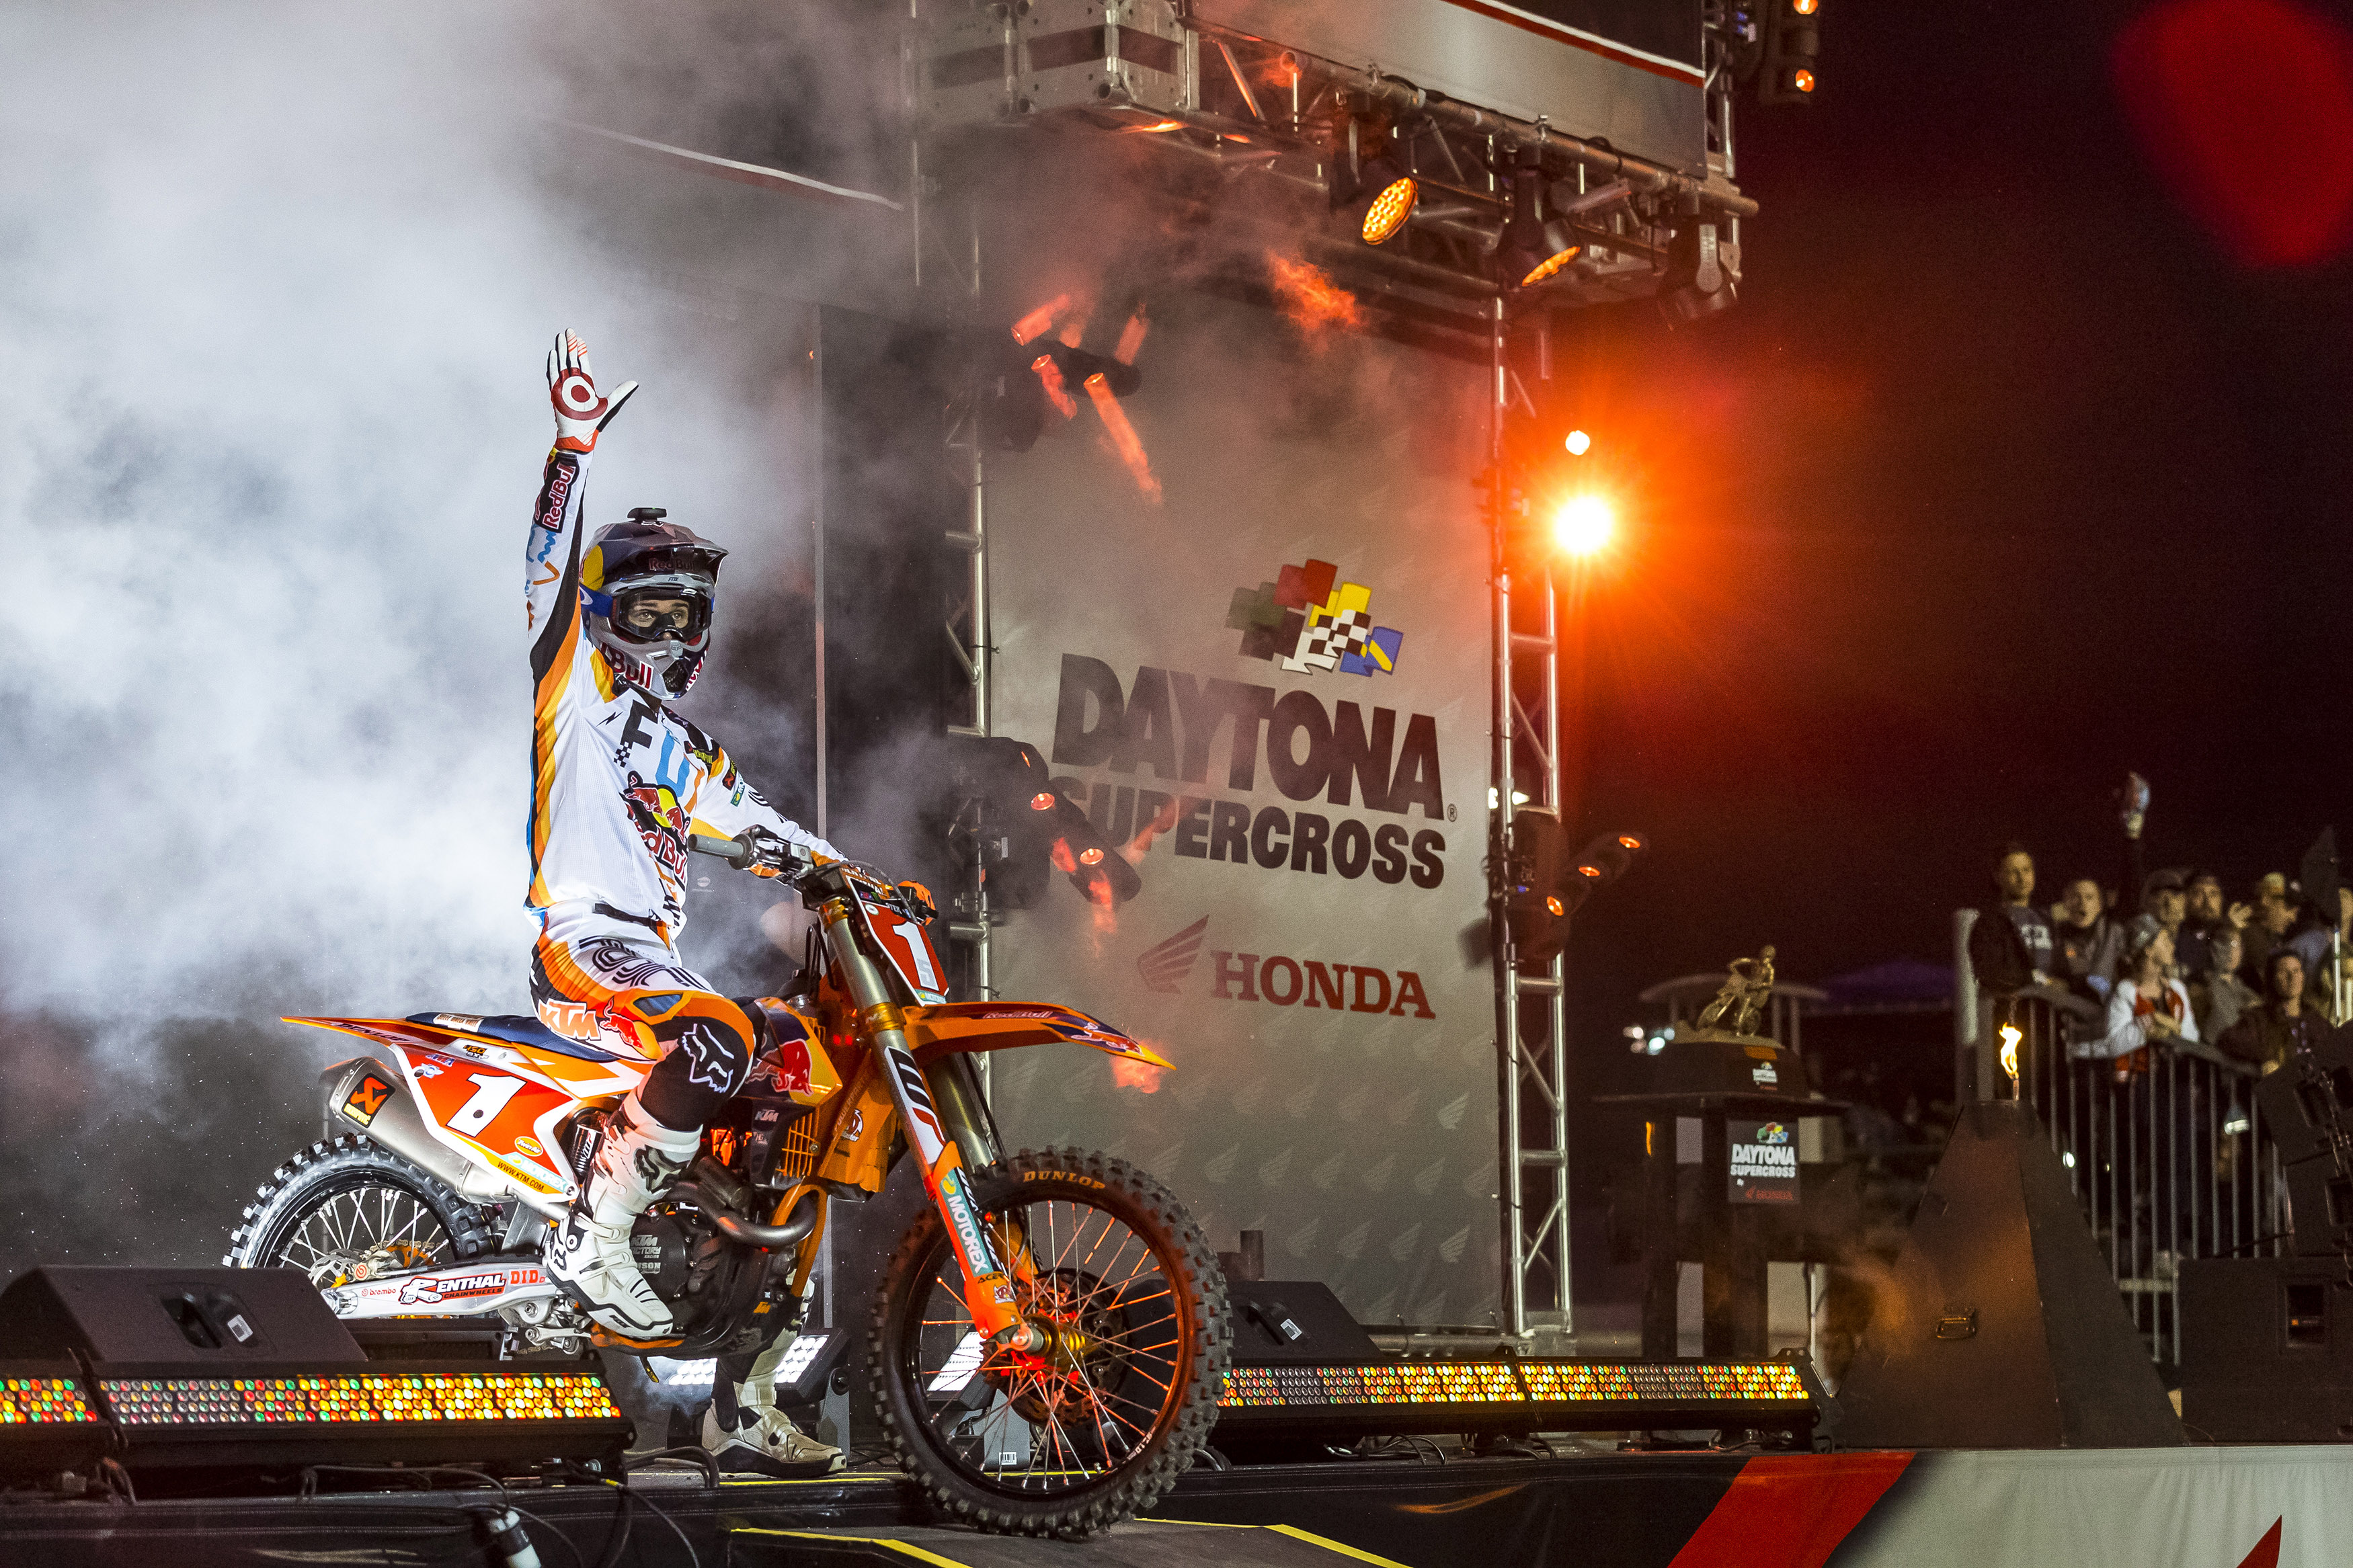 Ryan Dungey competes at Round Ten of the 2017 AMA Supercross Series at the Daytona International Speedway in Daytona, Florida, USA on 11 March 2017. // Garth Milan/Red Bull Content Pool // P-20170313-00326 // Usage for editorial use only // Please go to www.redbullcontentpool.com for further information. //